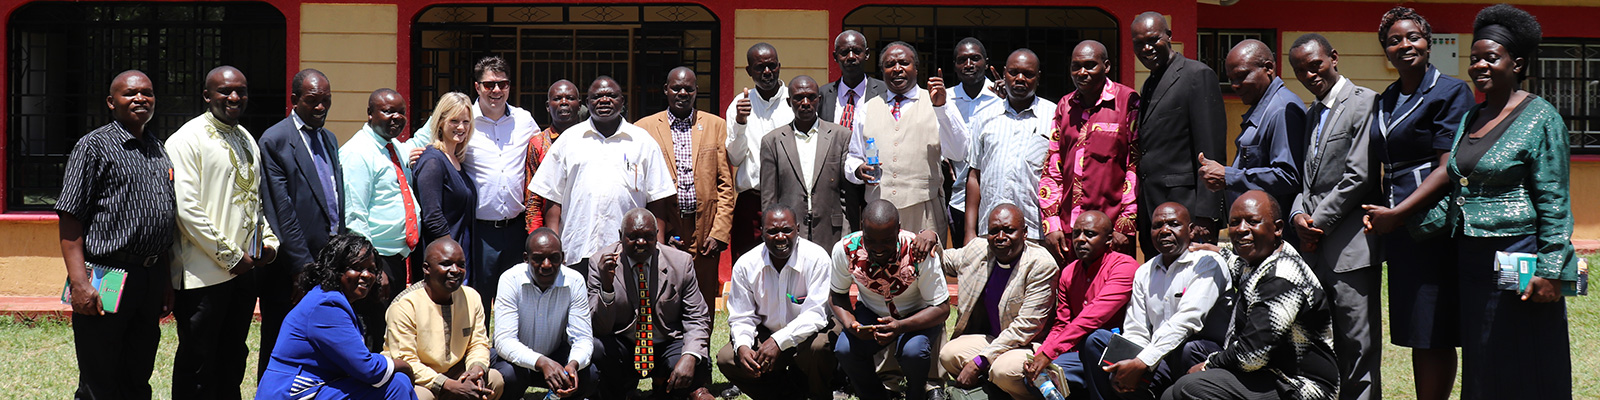 RICC meets with the Bungoma Kenya pastor's council